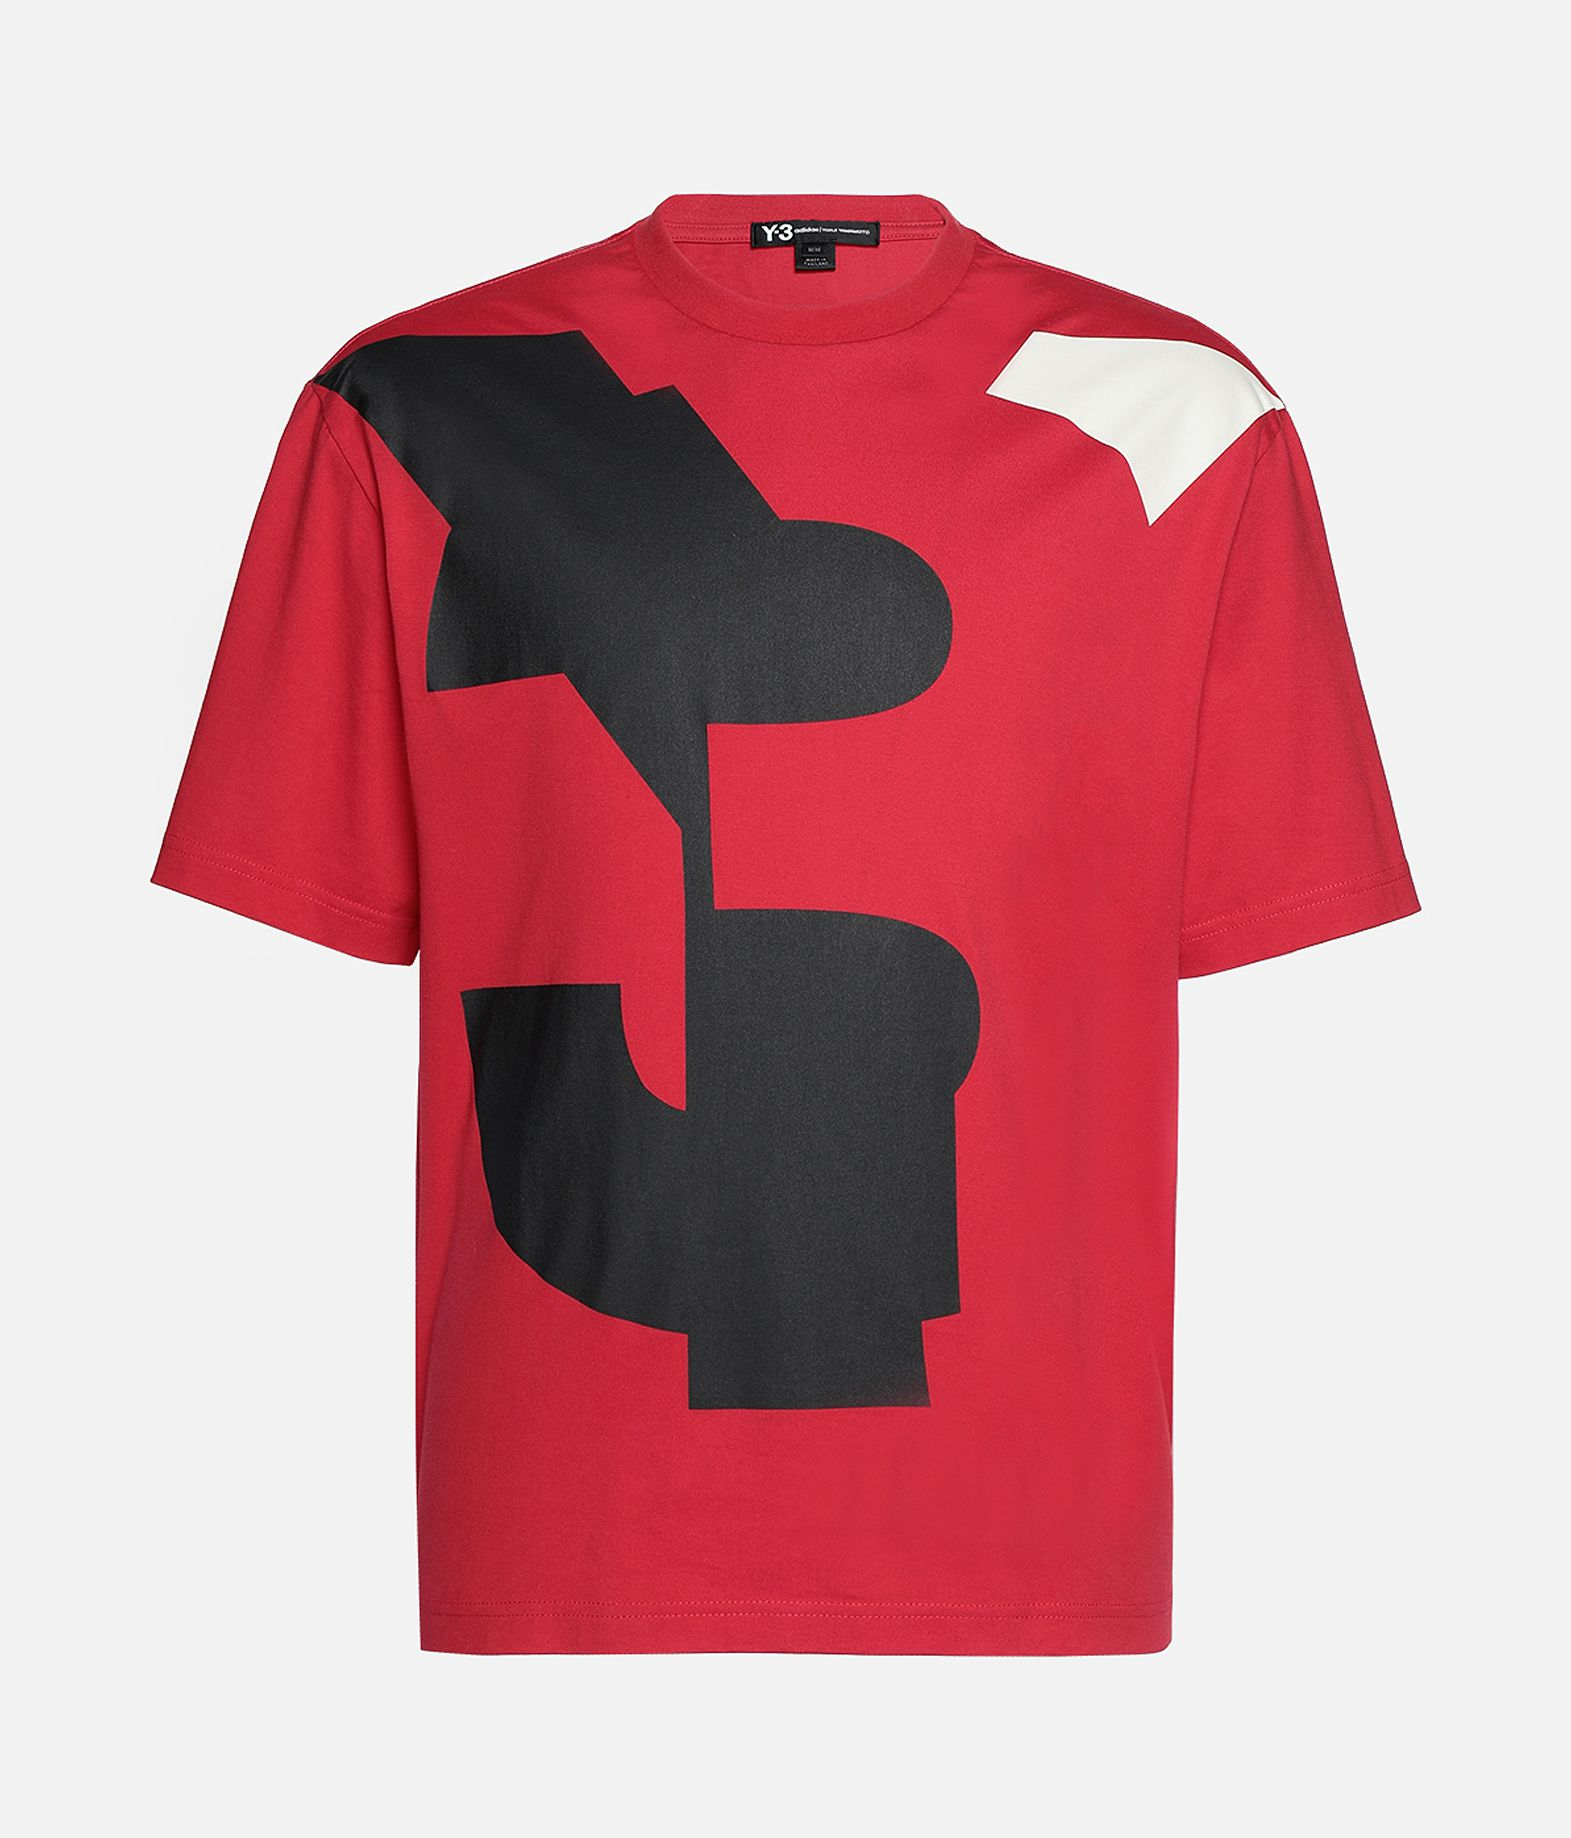 Y-3 Y-3 GRAPHIC TEE Short sleeve t-shirt Man f